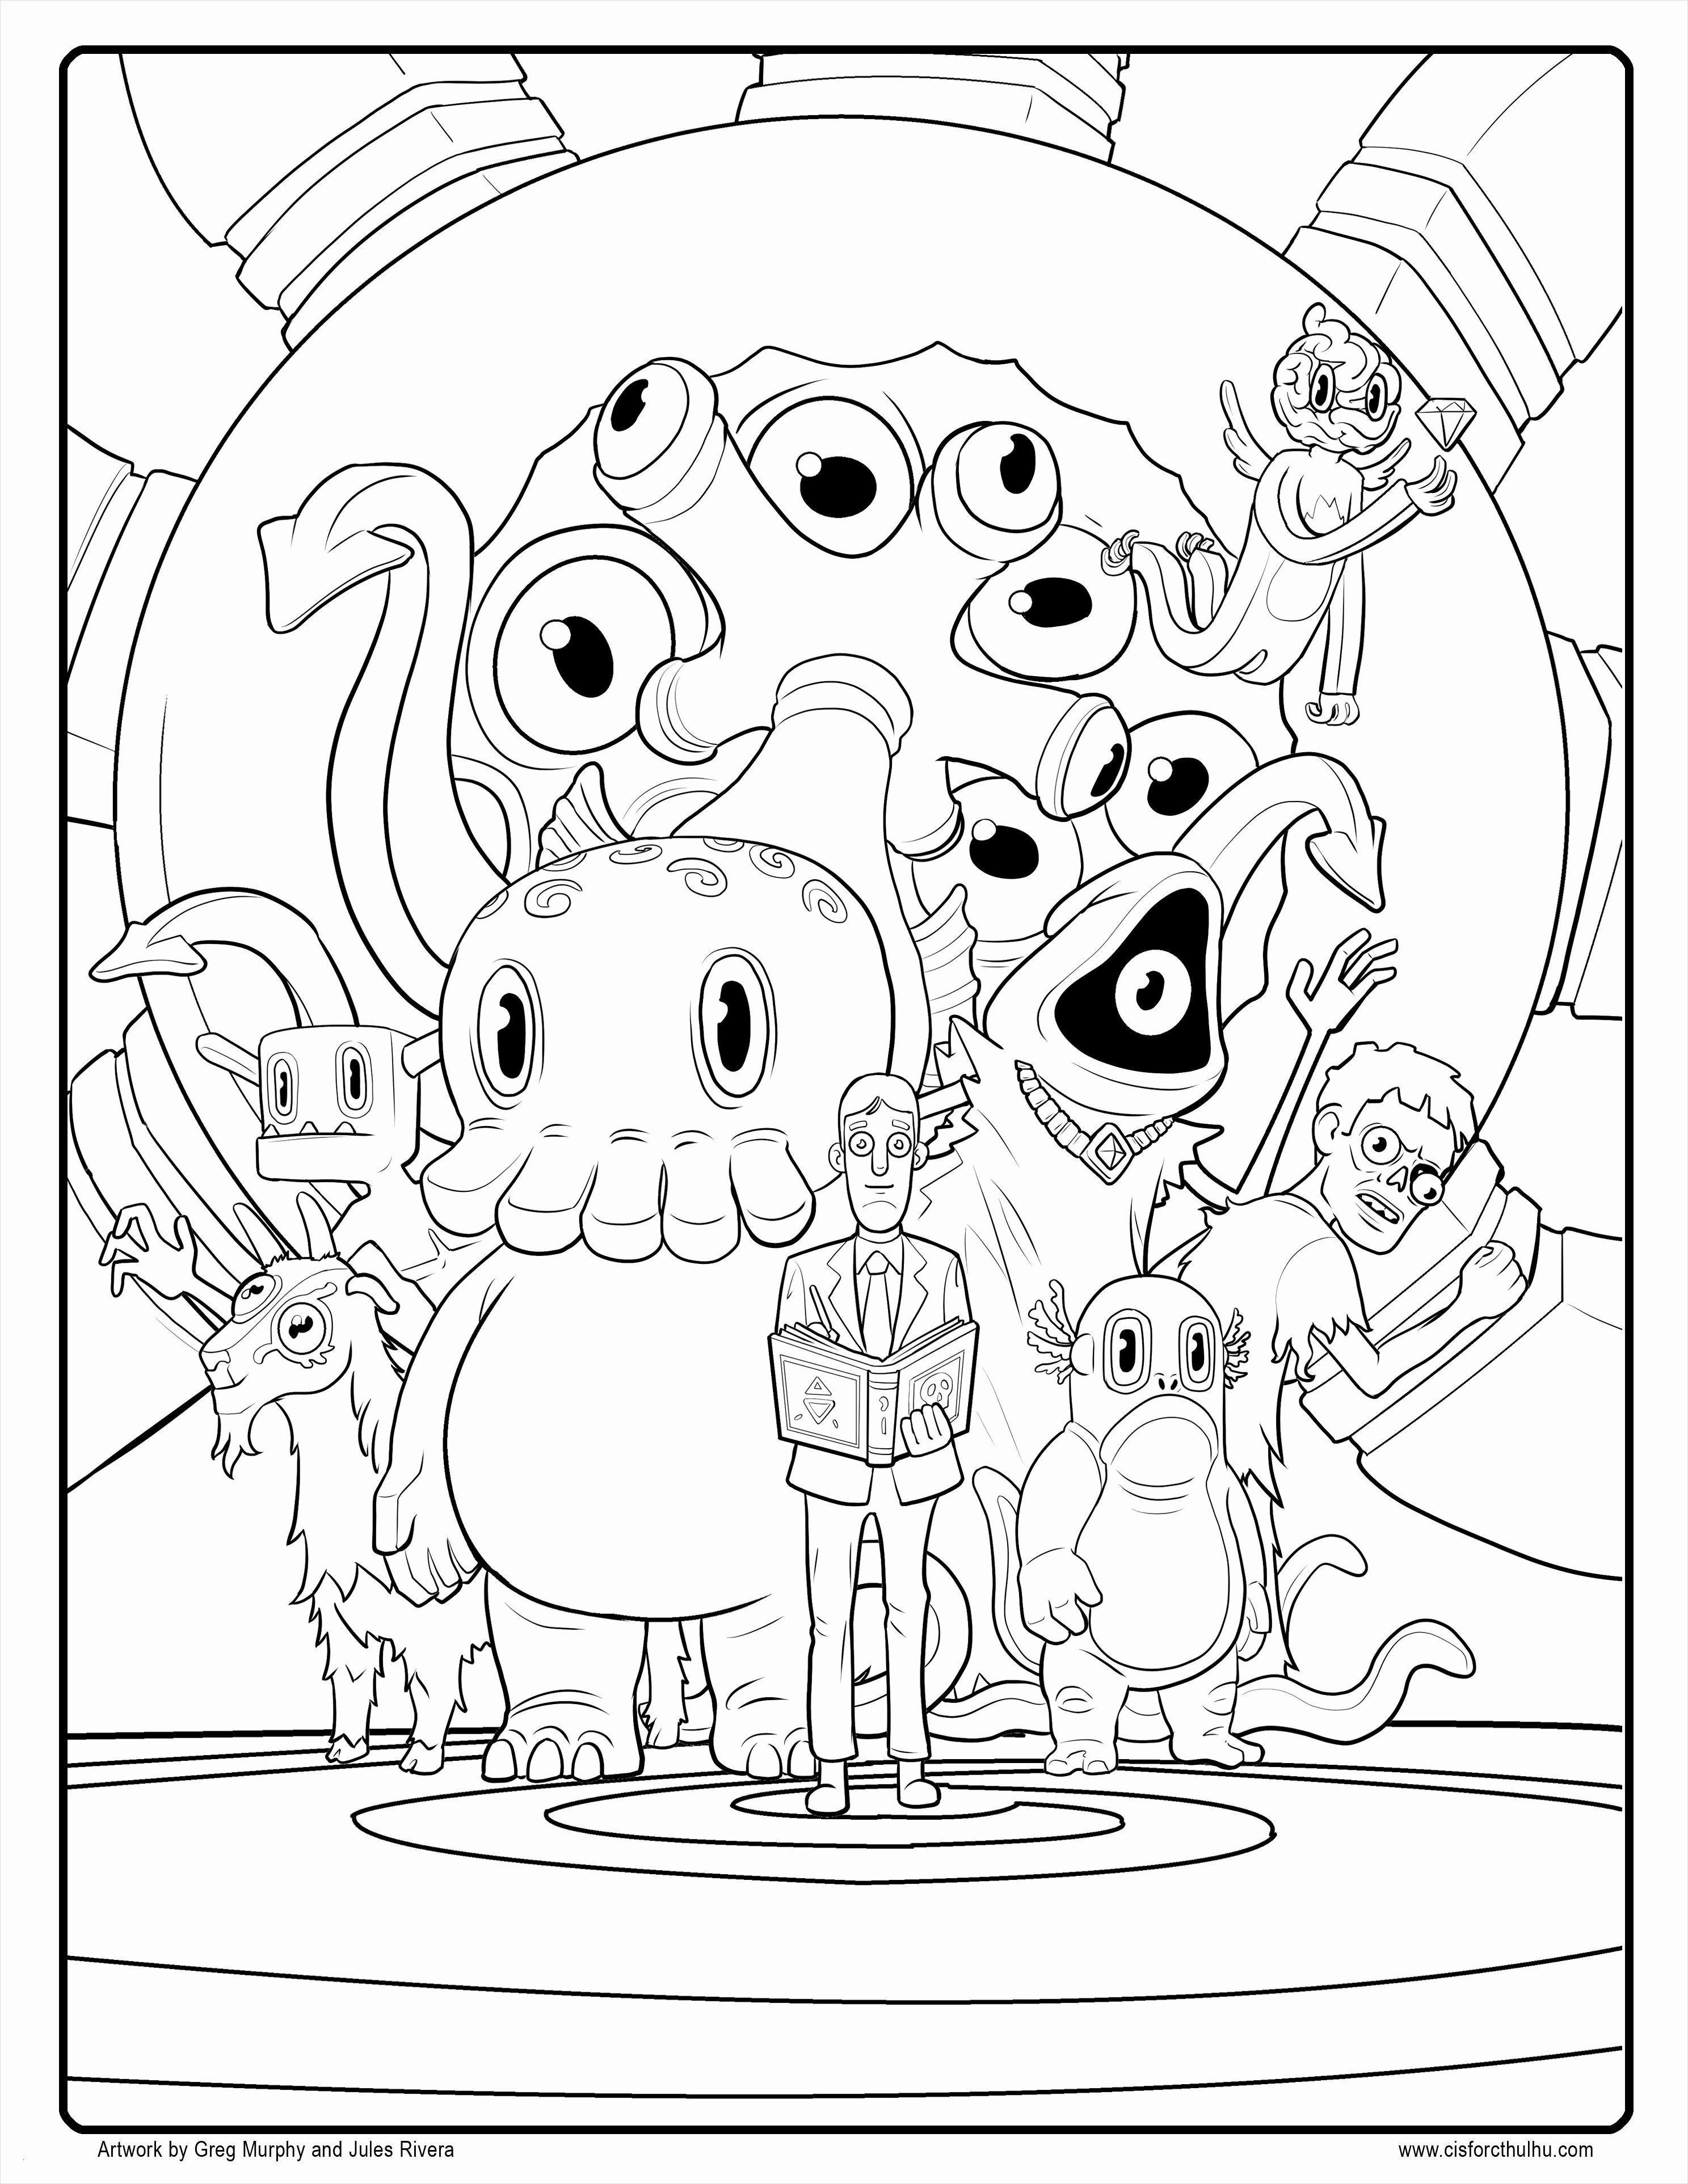 Fnaf Coloring Pages  Printable 14l - To print for your project